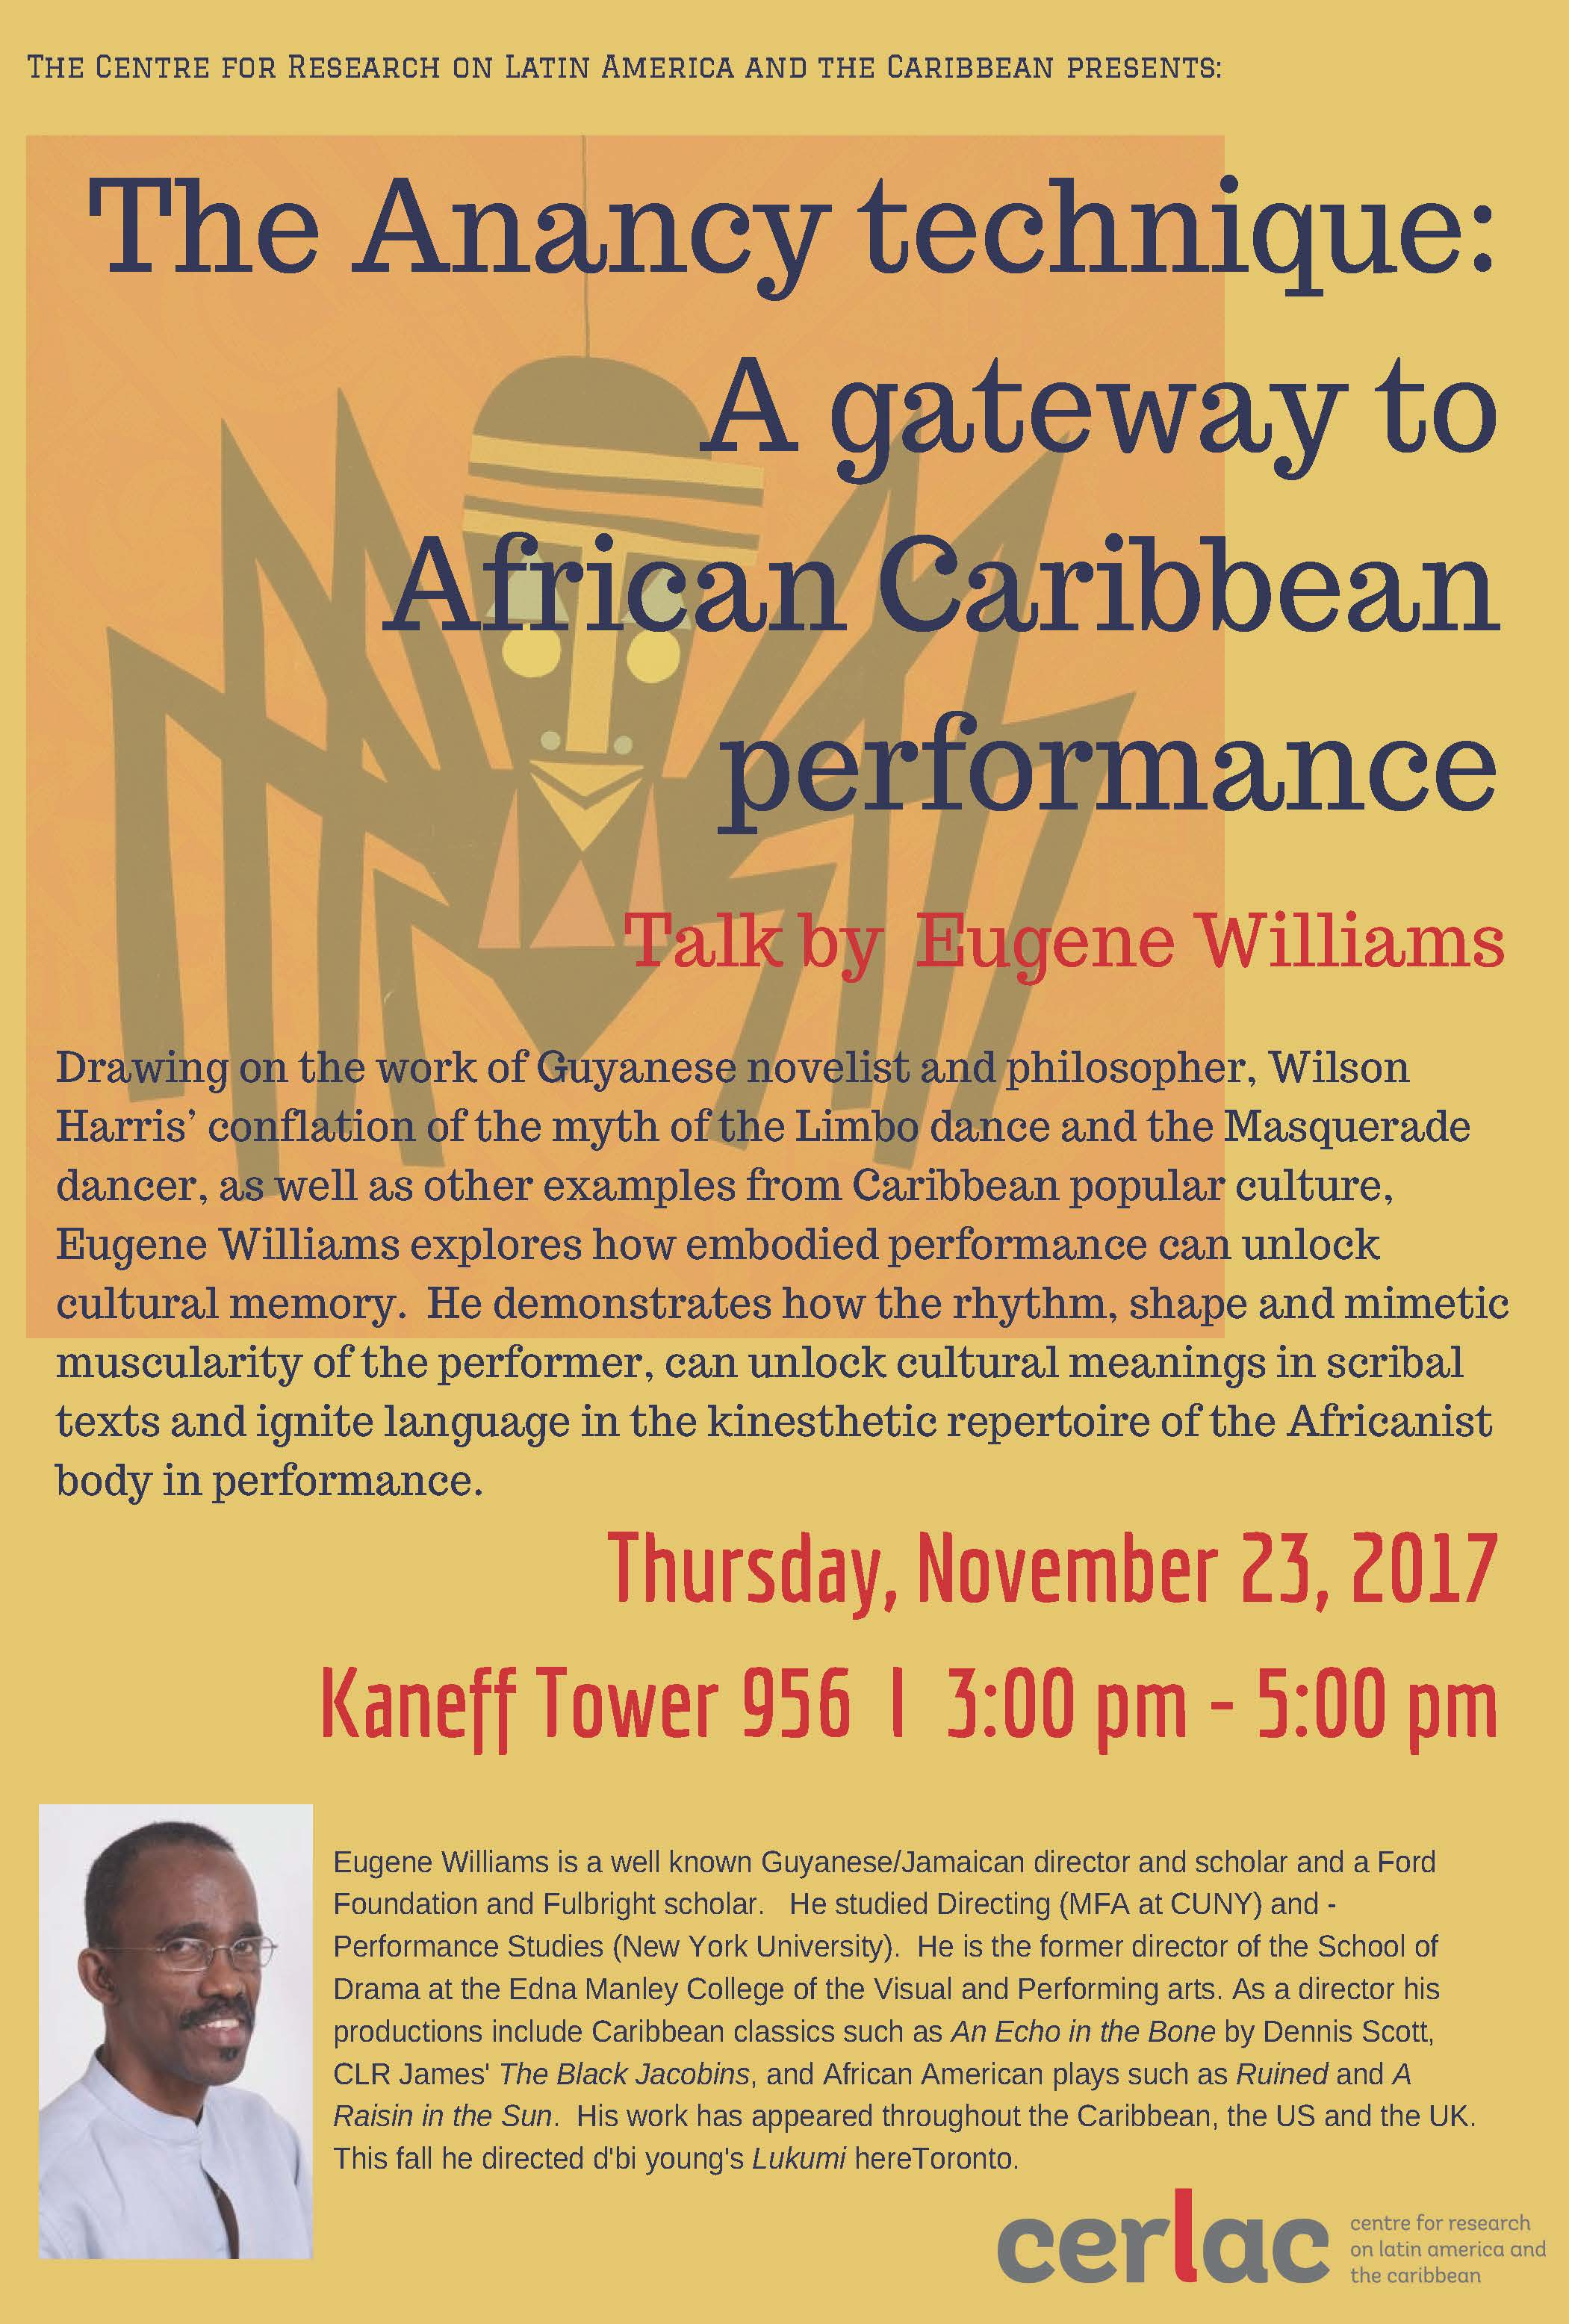 The Anancy technique: A gateway to African Caribbean performance. Talk by Eugene Williams. @ Kaneff Tower 956